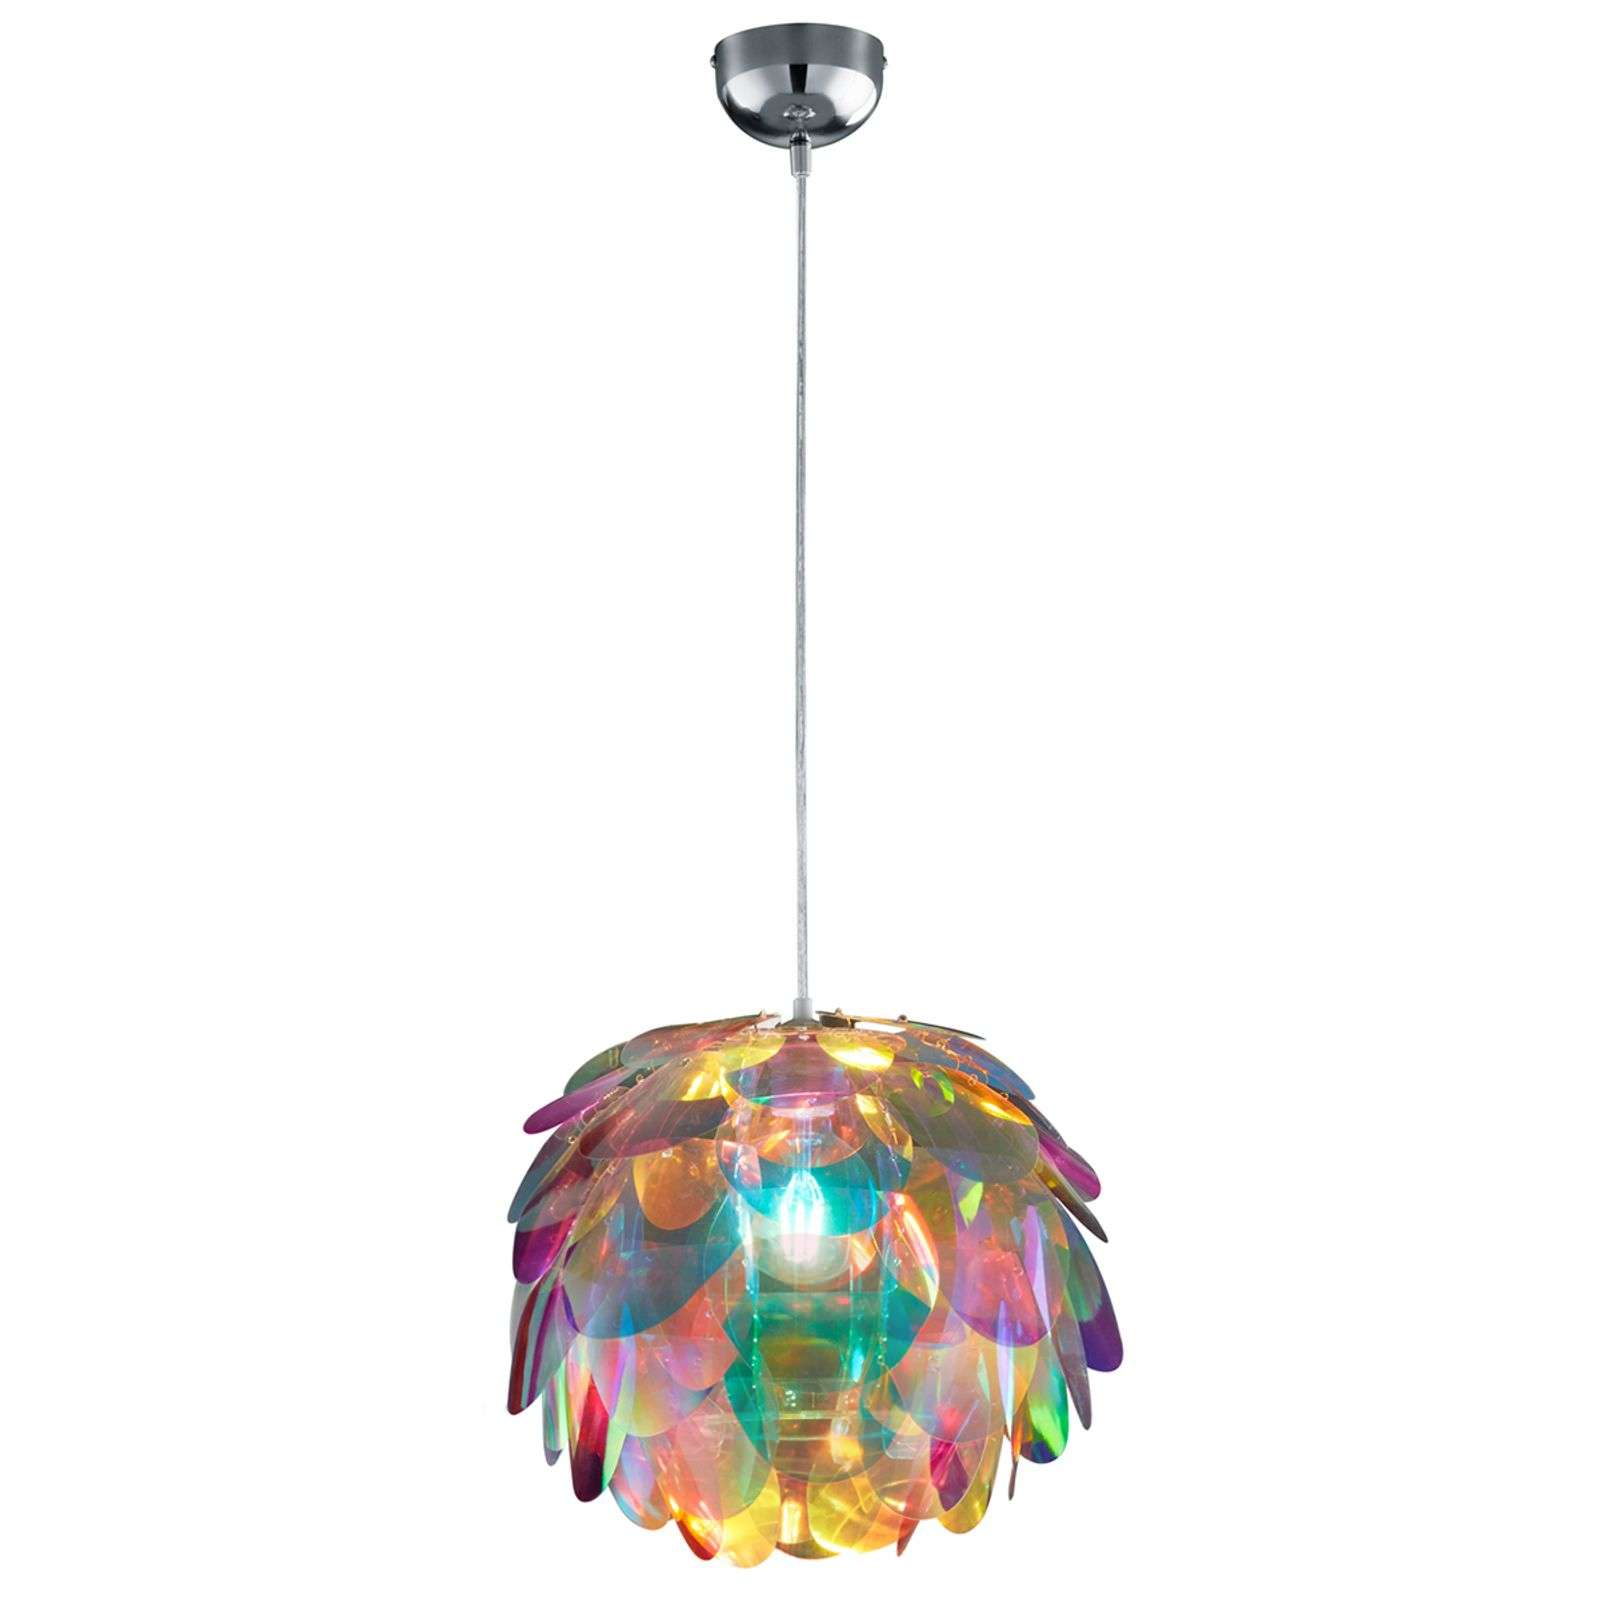 Hanging light Clover in rainbow colours-8029191-01